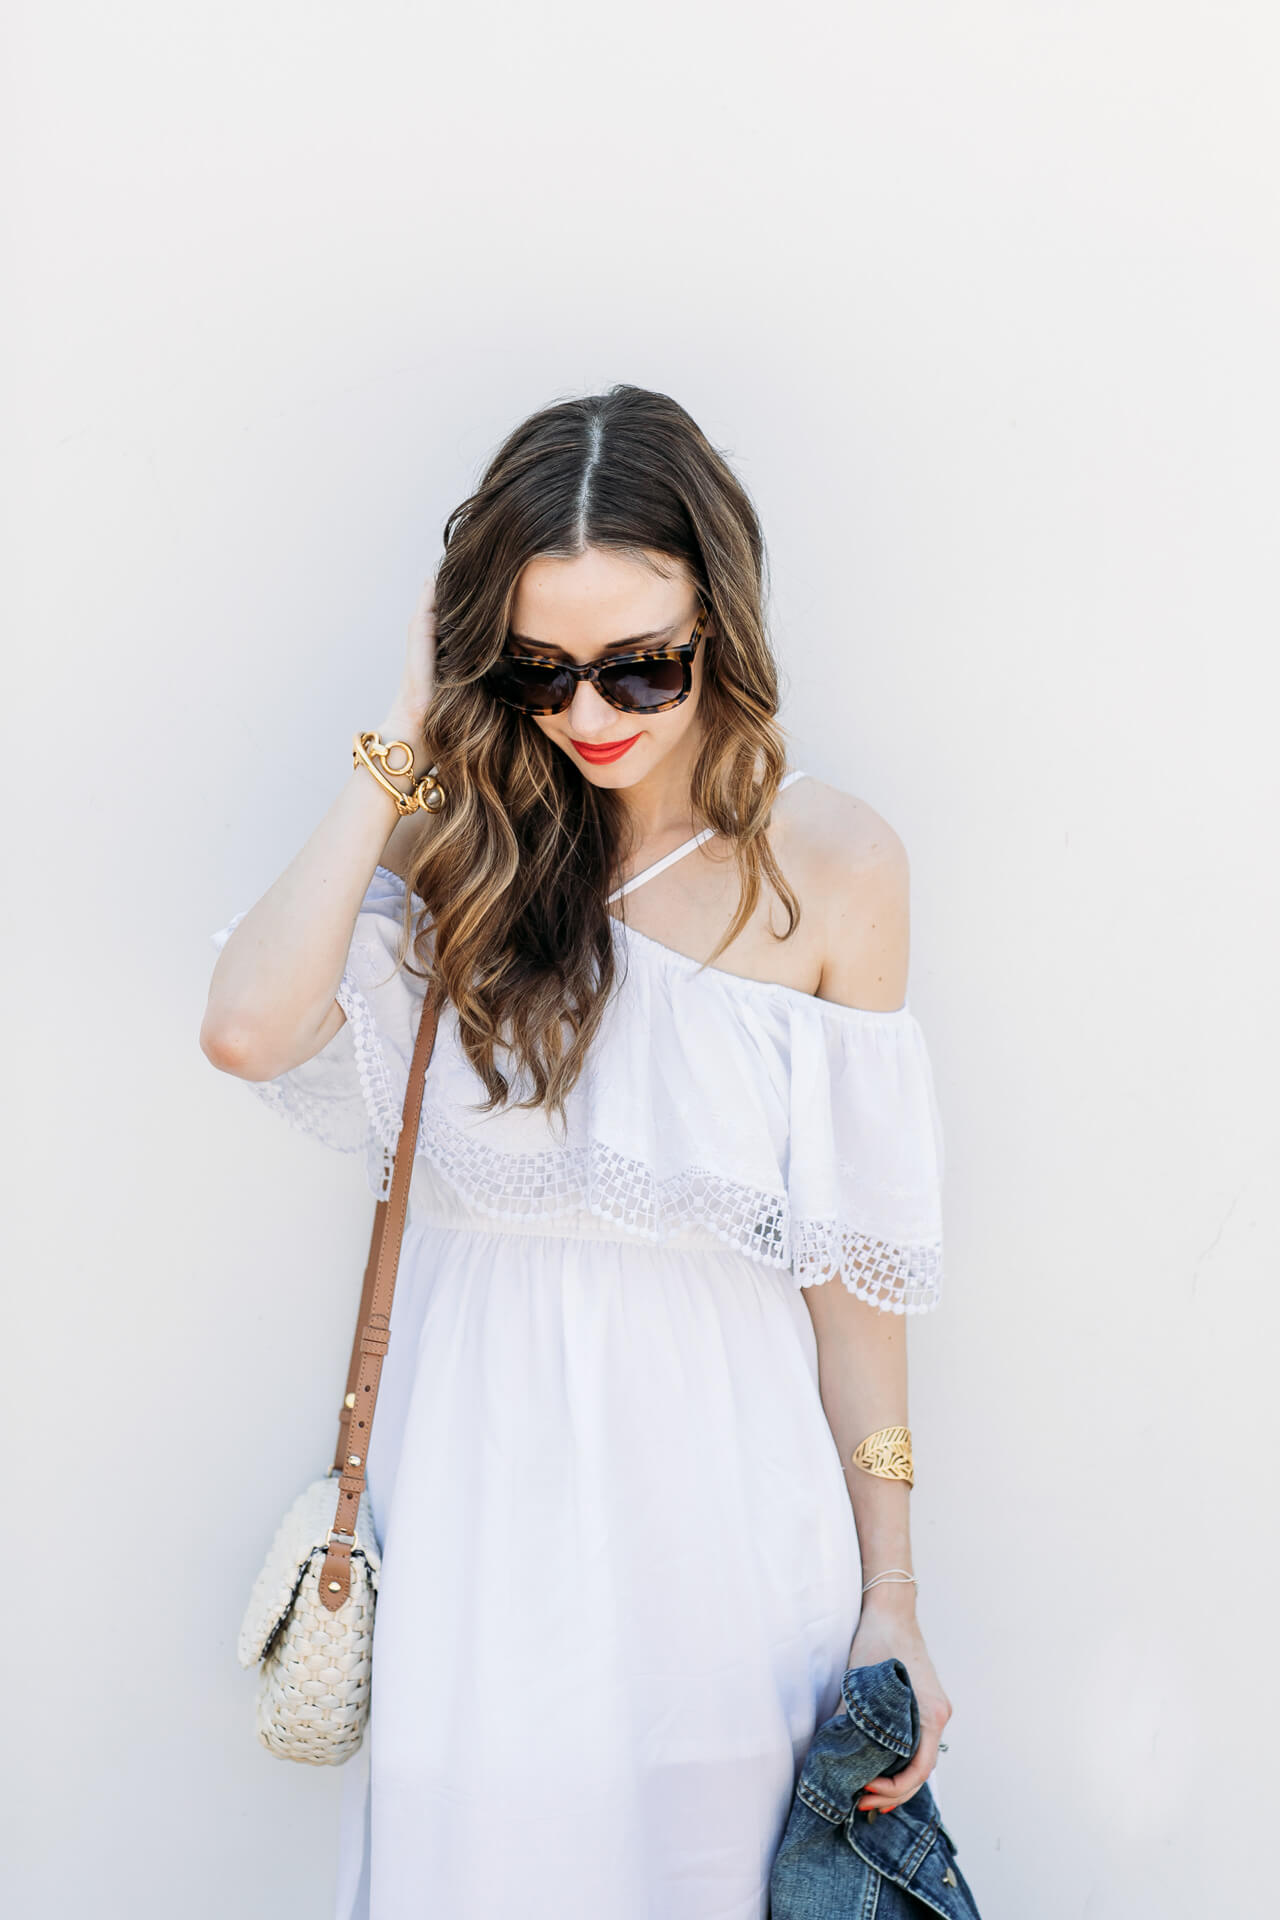 Gorgeous wavy brunette hairstyles with cute straw bag